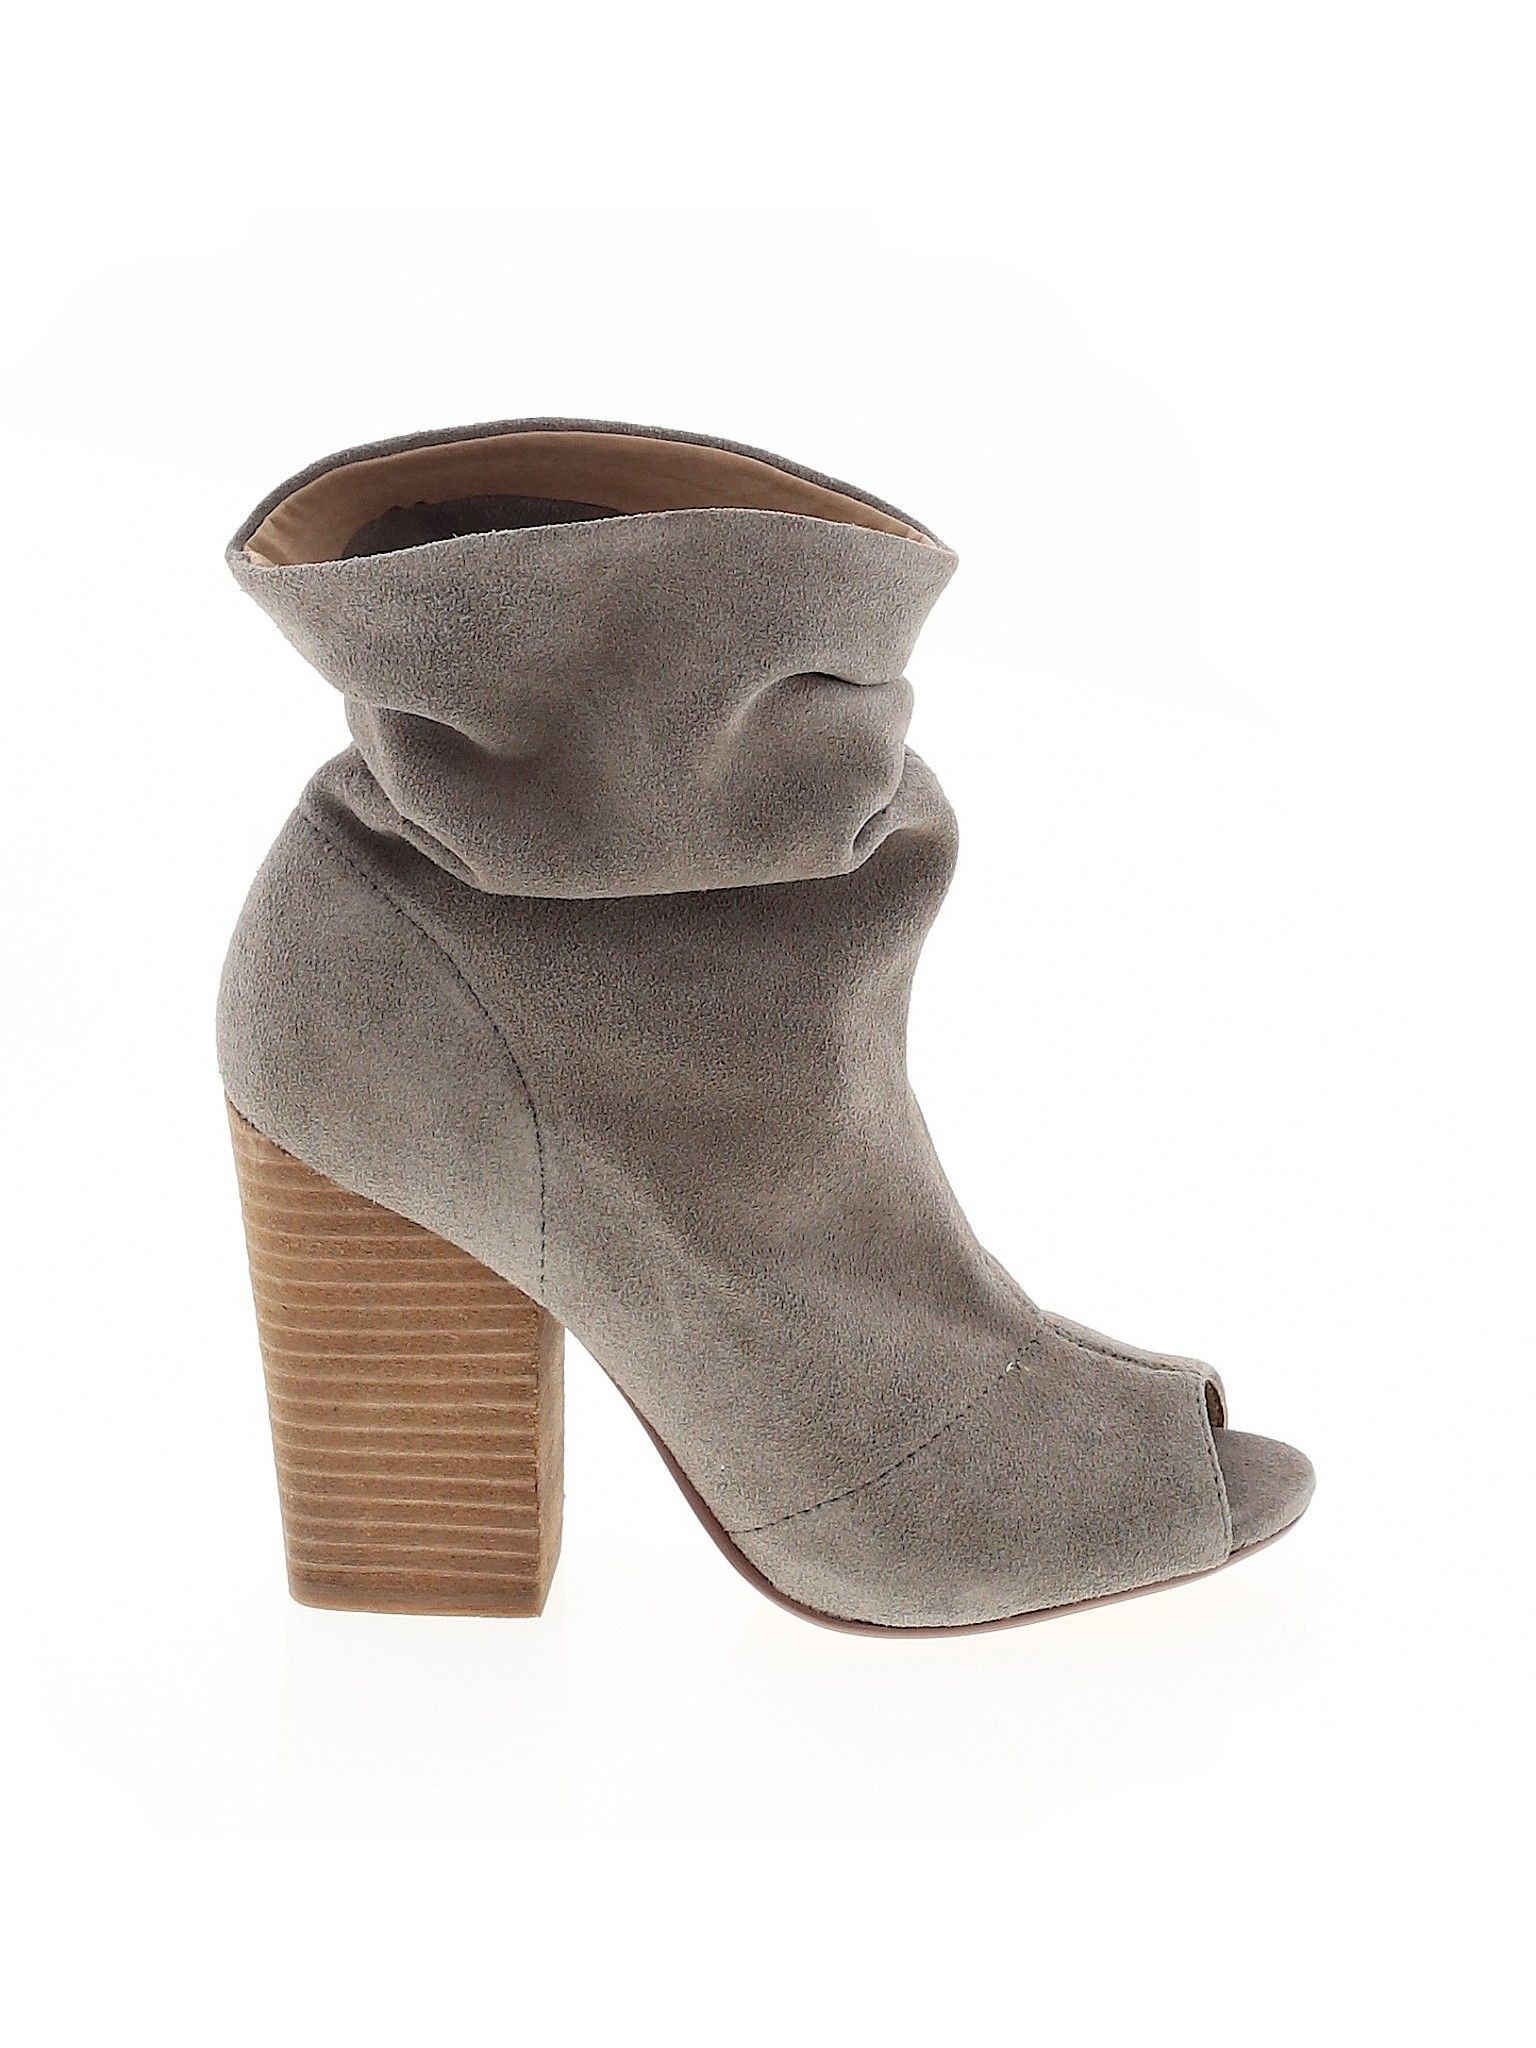 Chinese Laundry Ankle Boot Gray Solid Women S Shoes Size 6